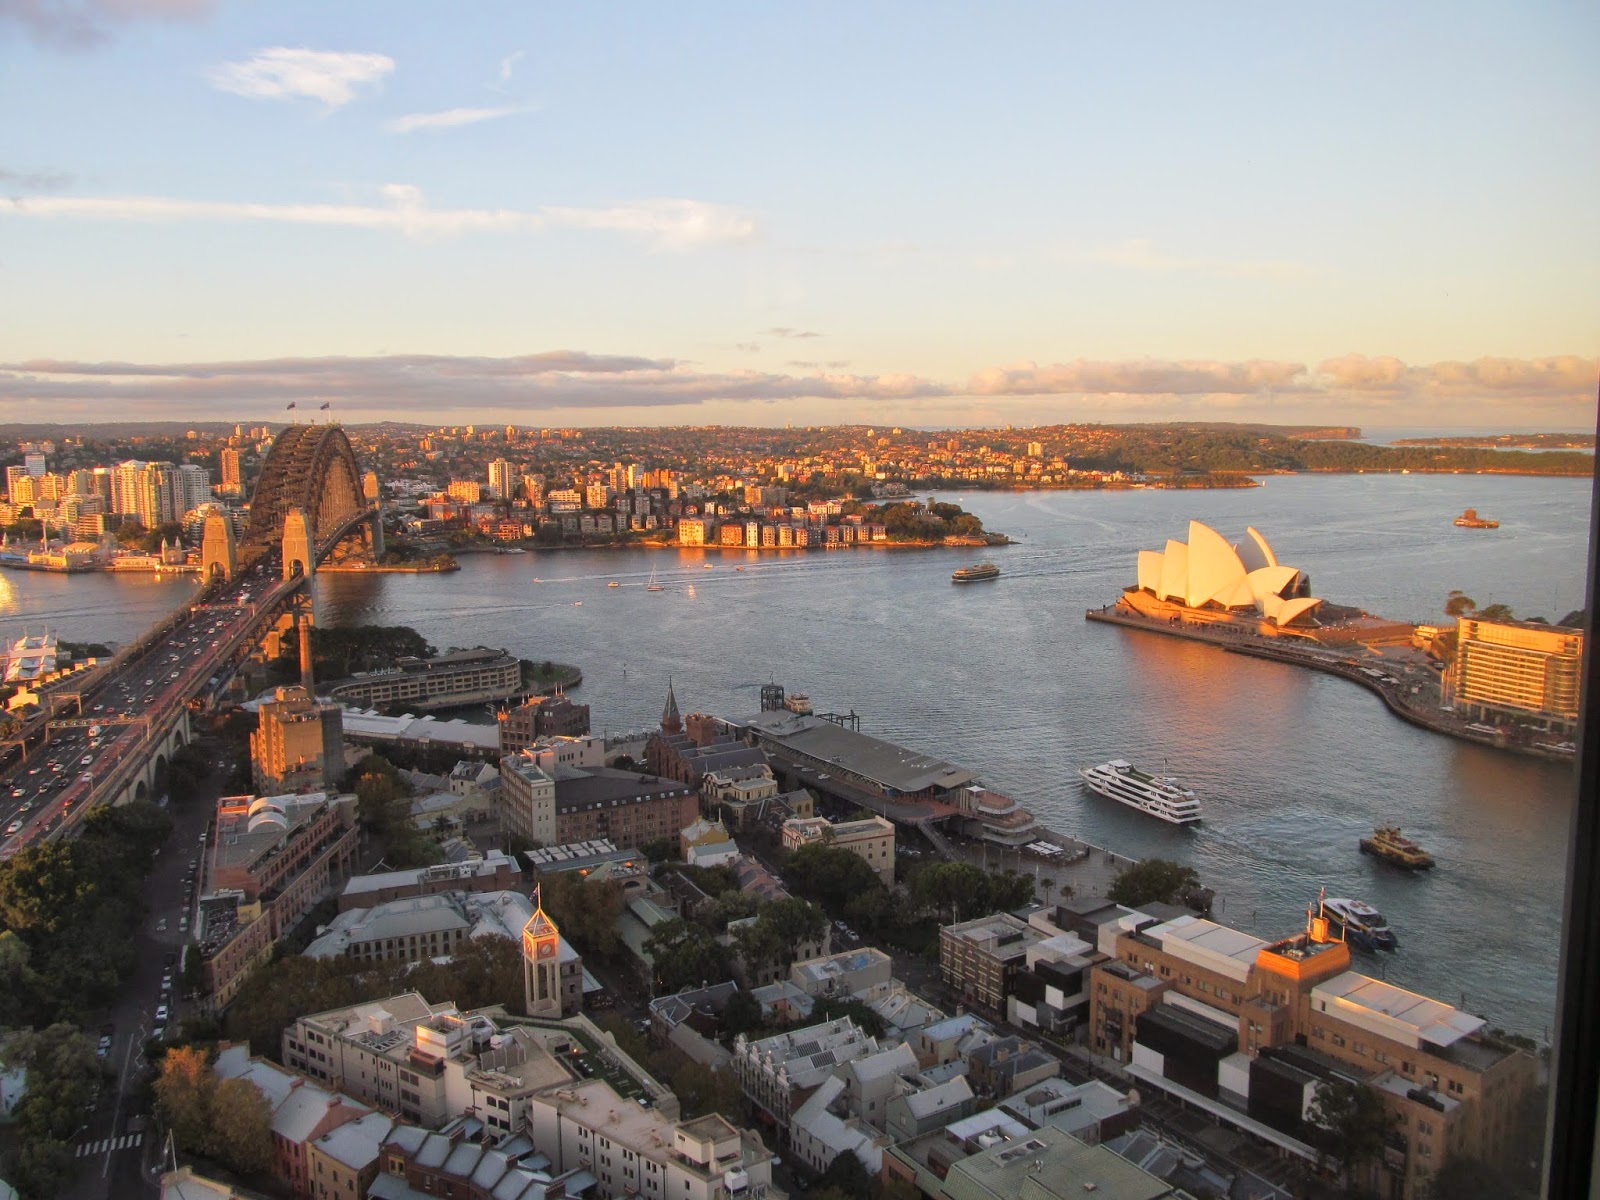 View of Sydney from Shangri-La hotel